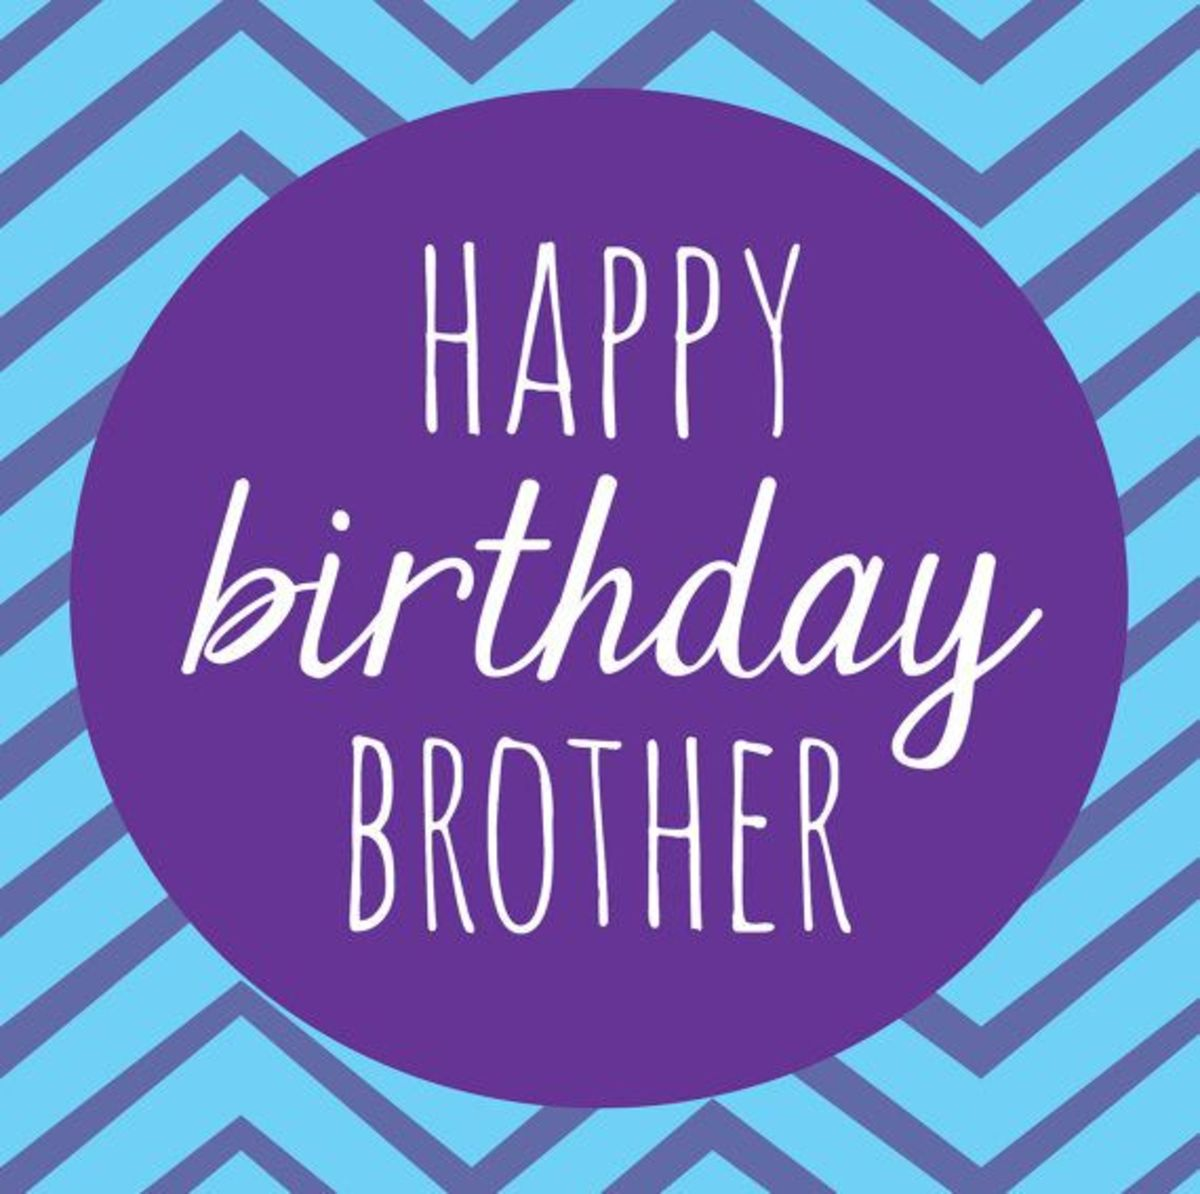 Birthday Wishes, Cards, And Quotes For Your Brother